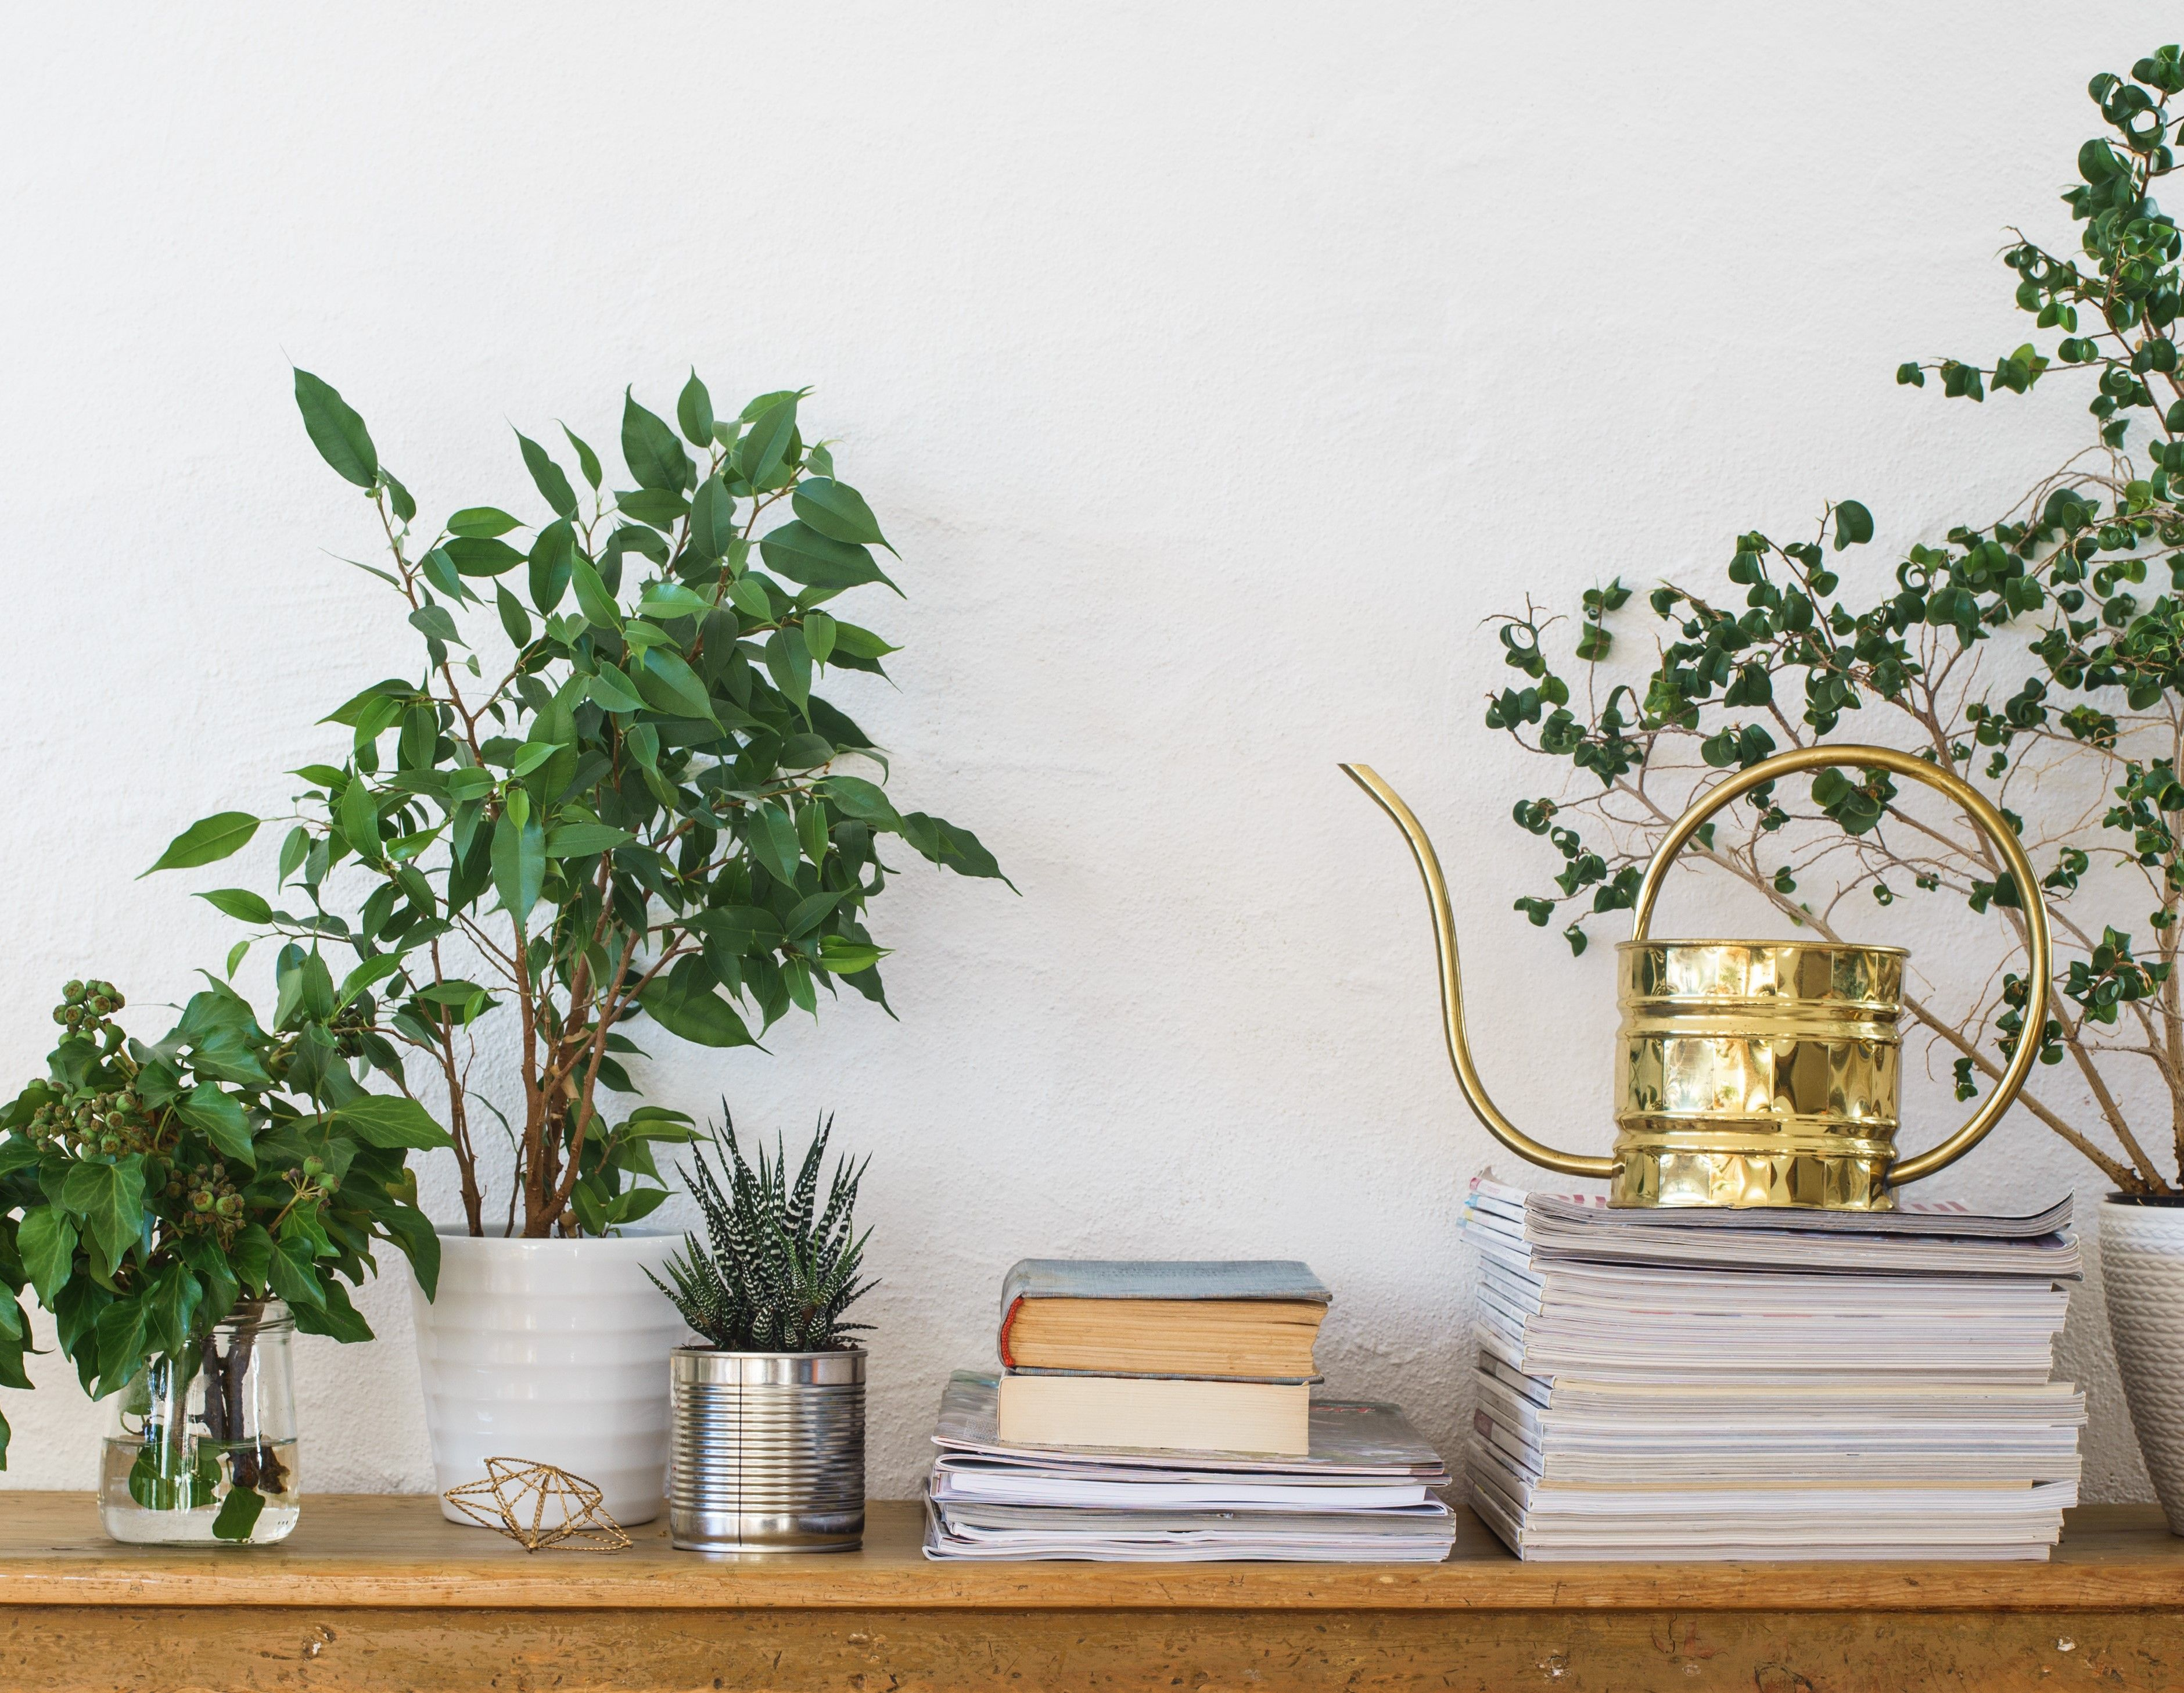 Houseplants, books, pile of journals and watering can